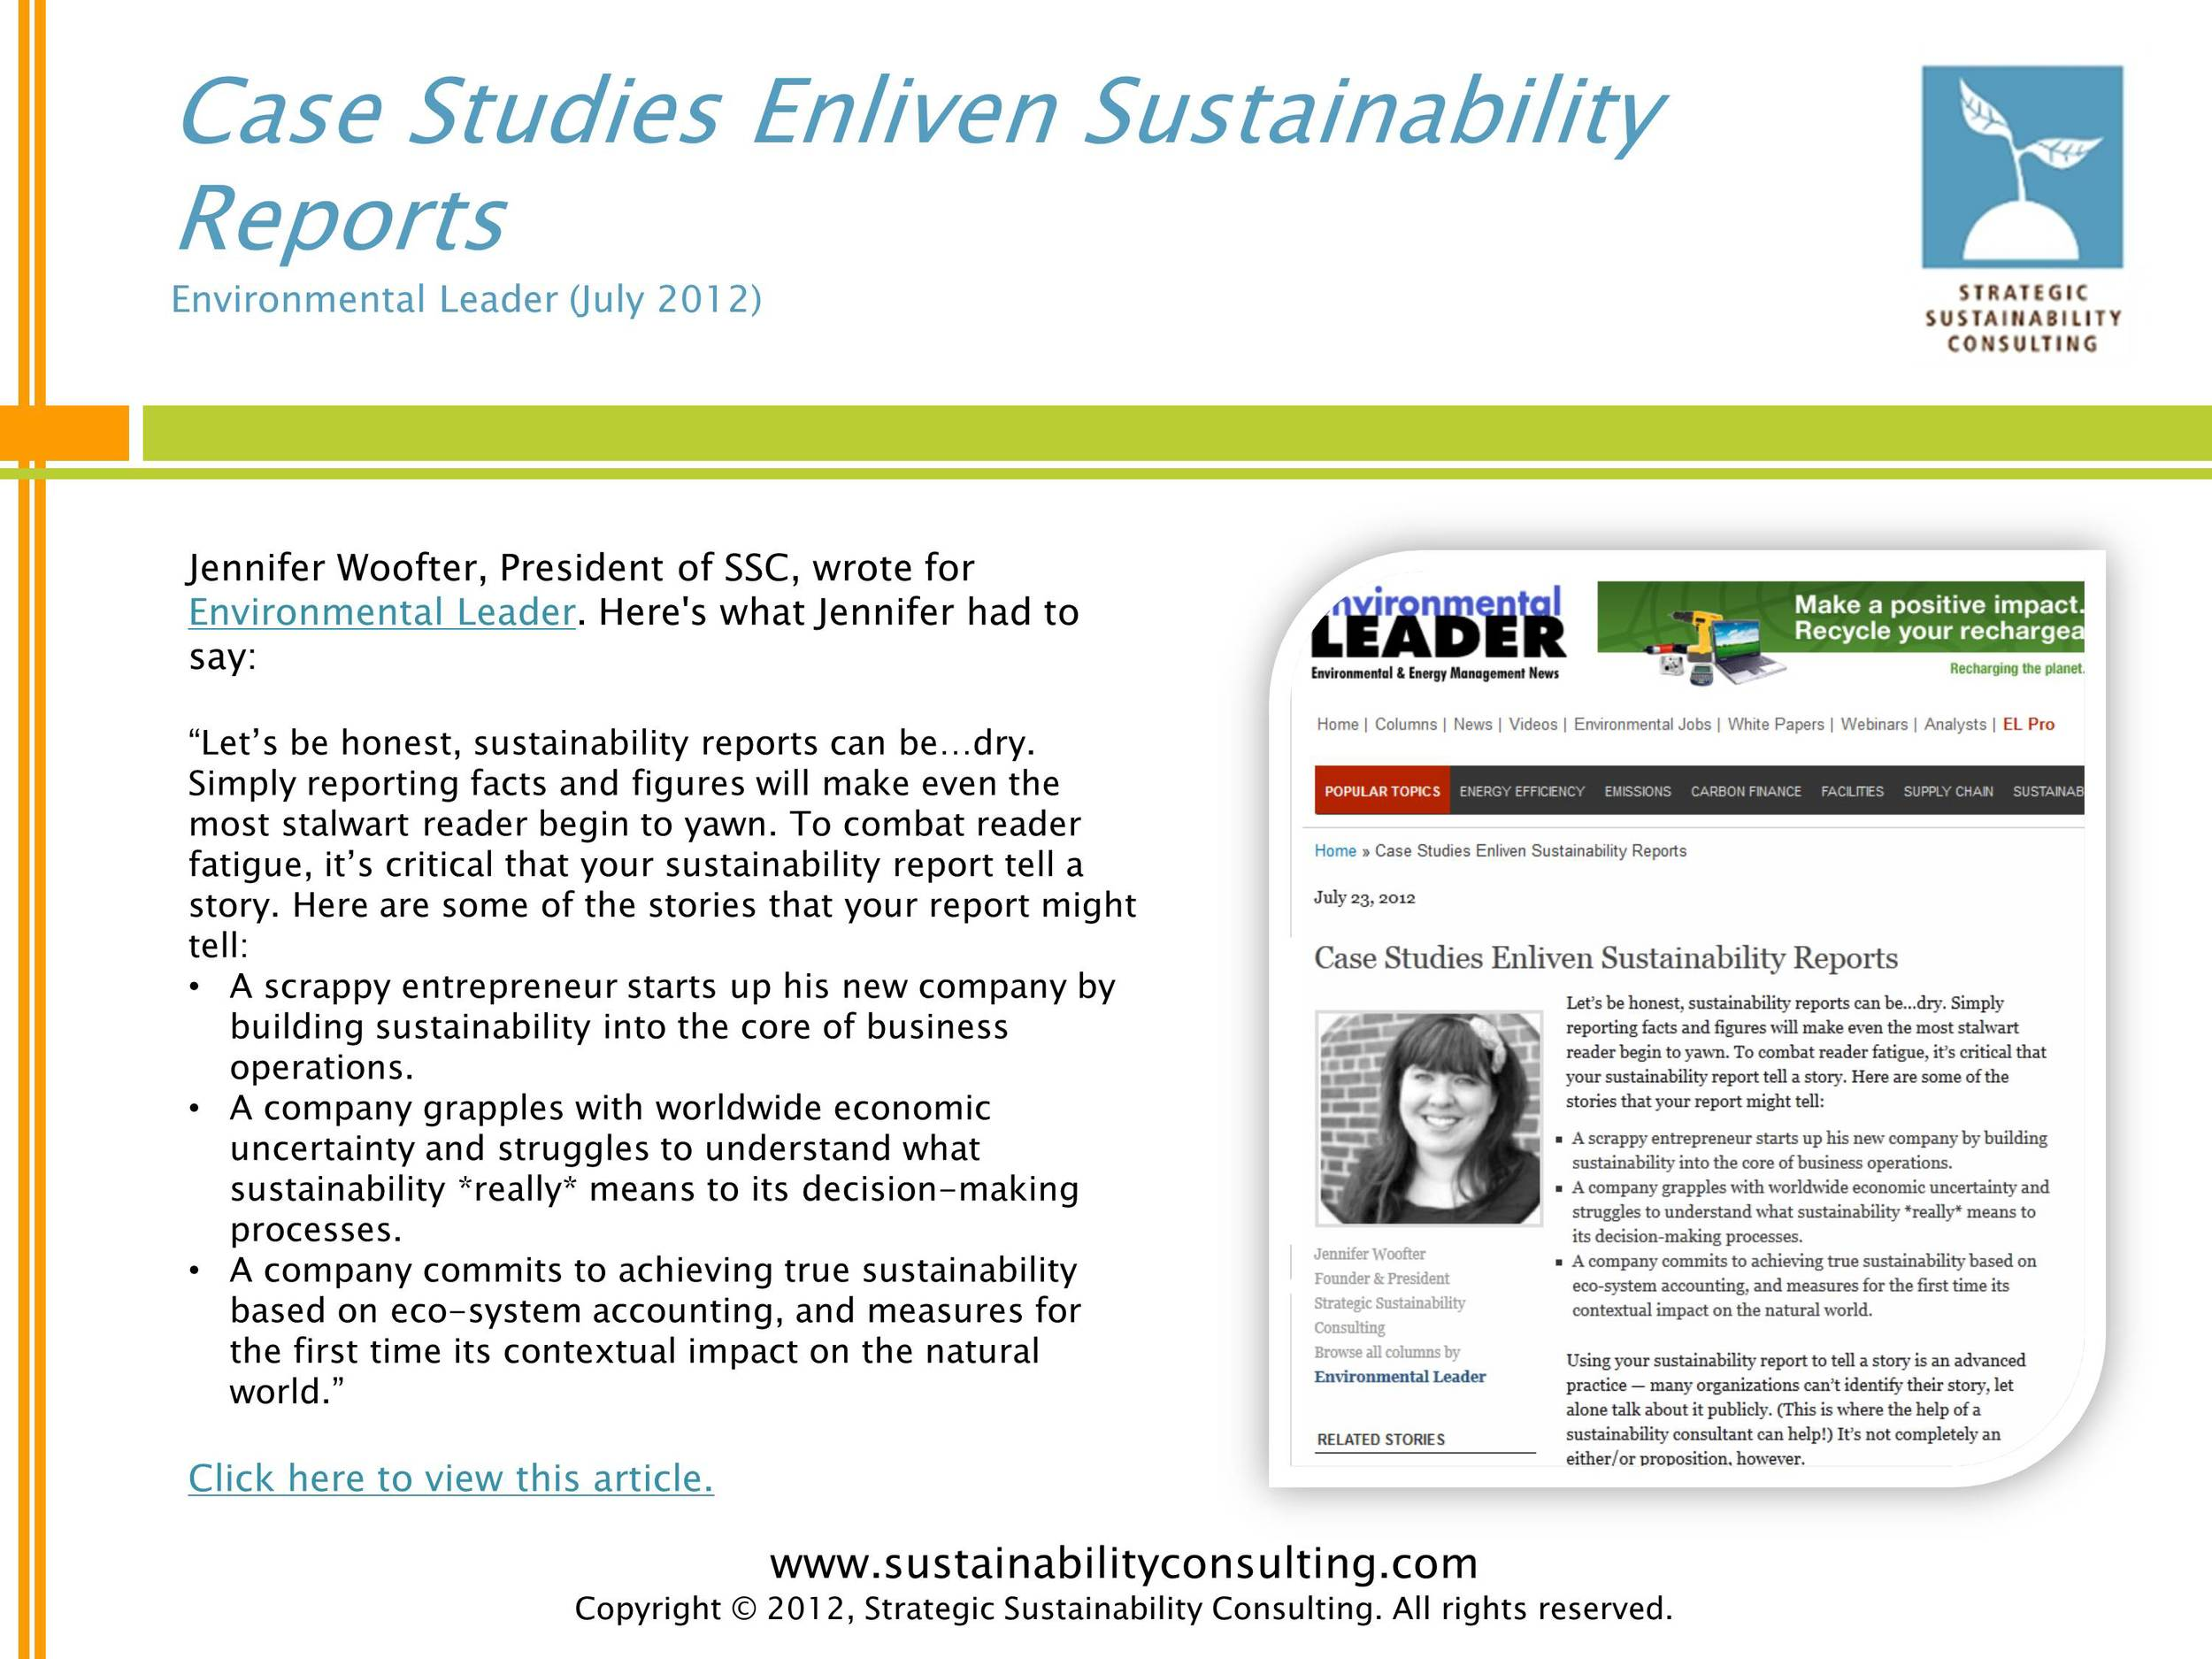 Case Studies Enliven Sustainability Reports